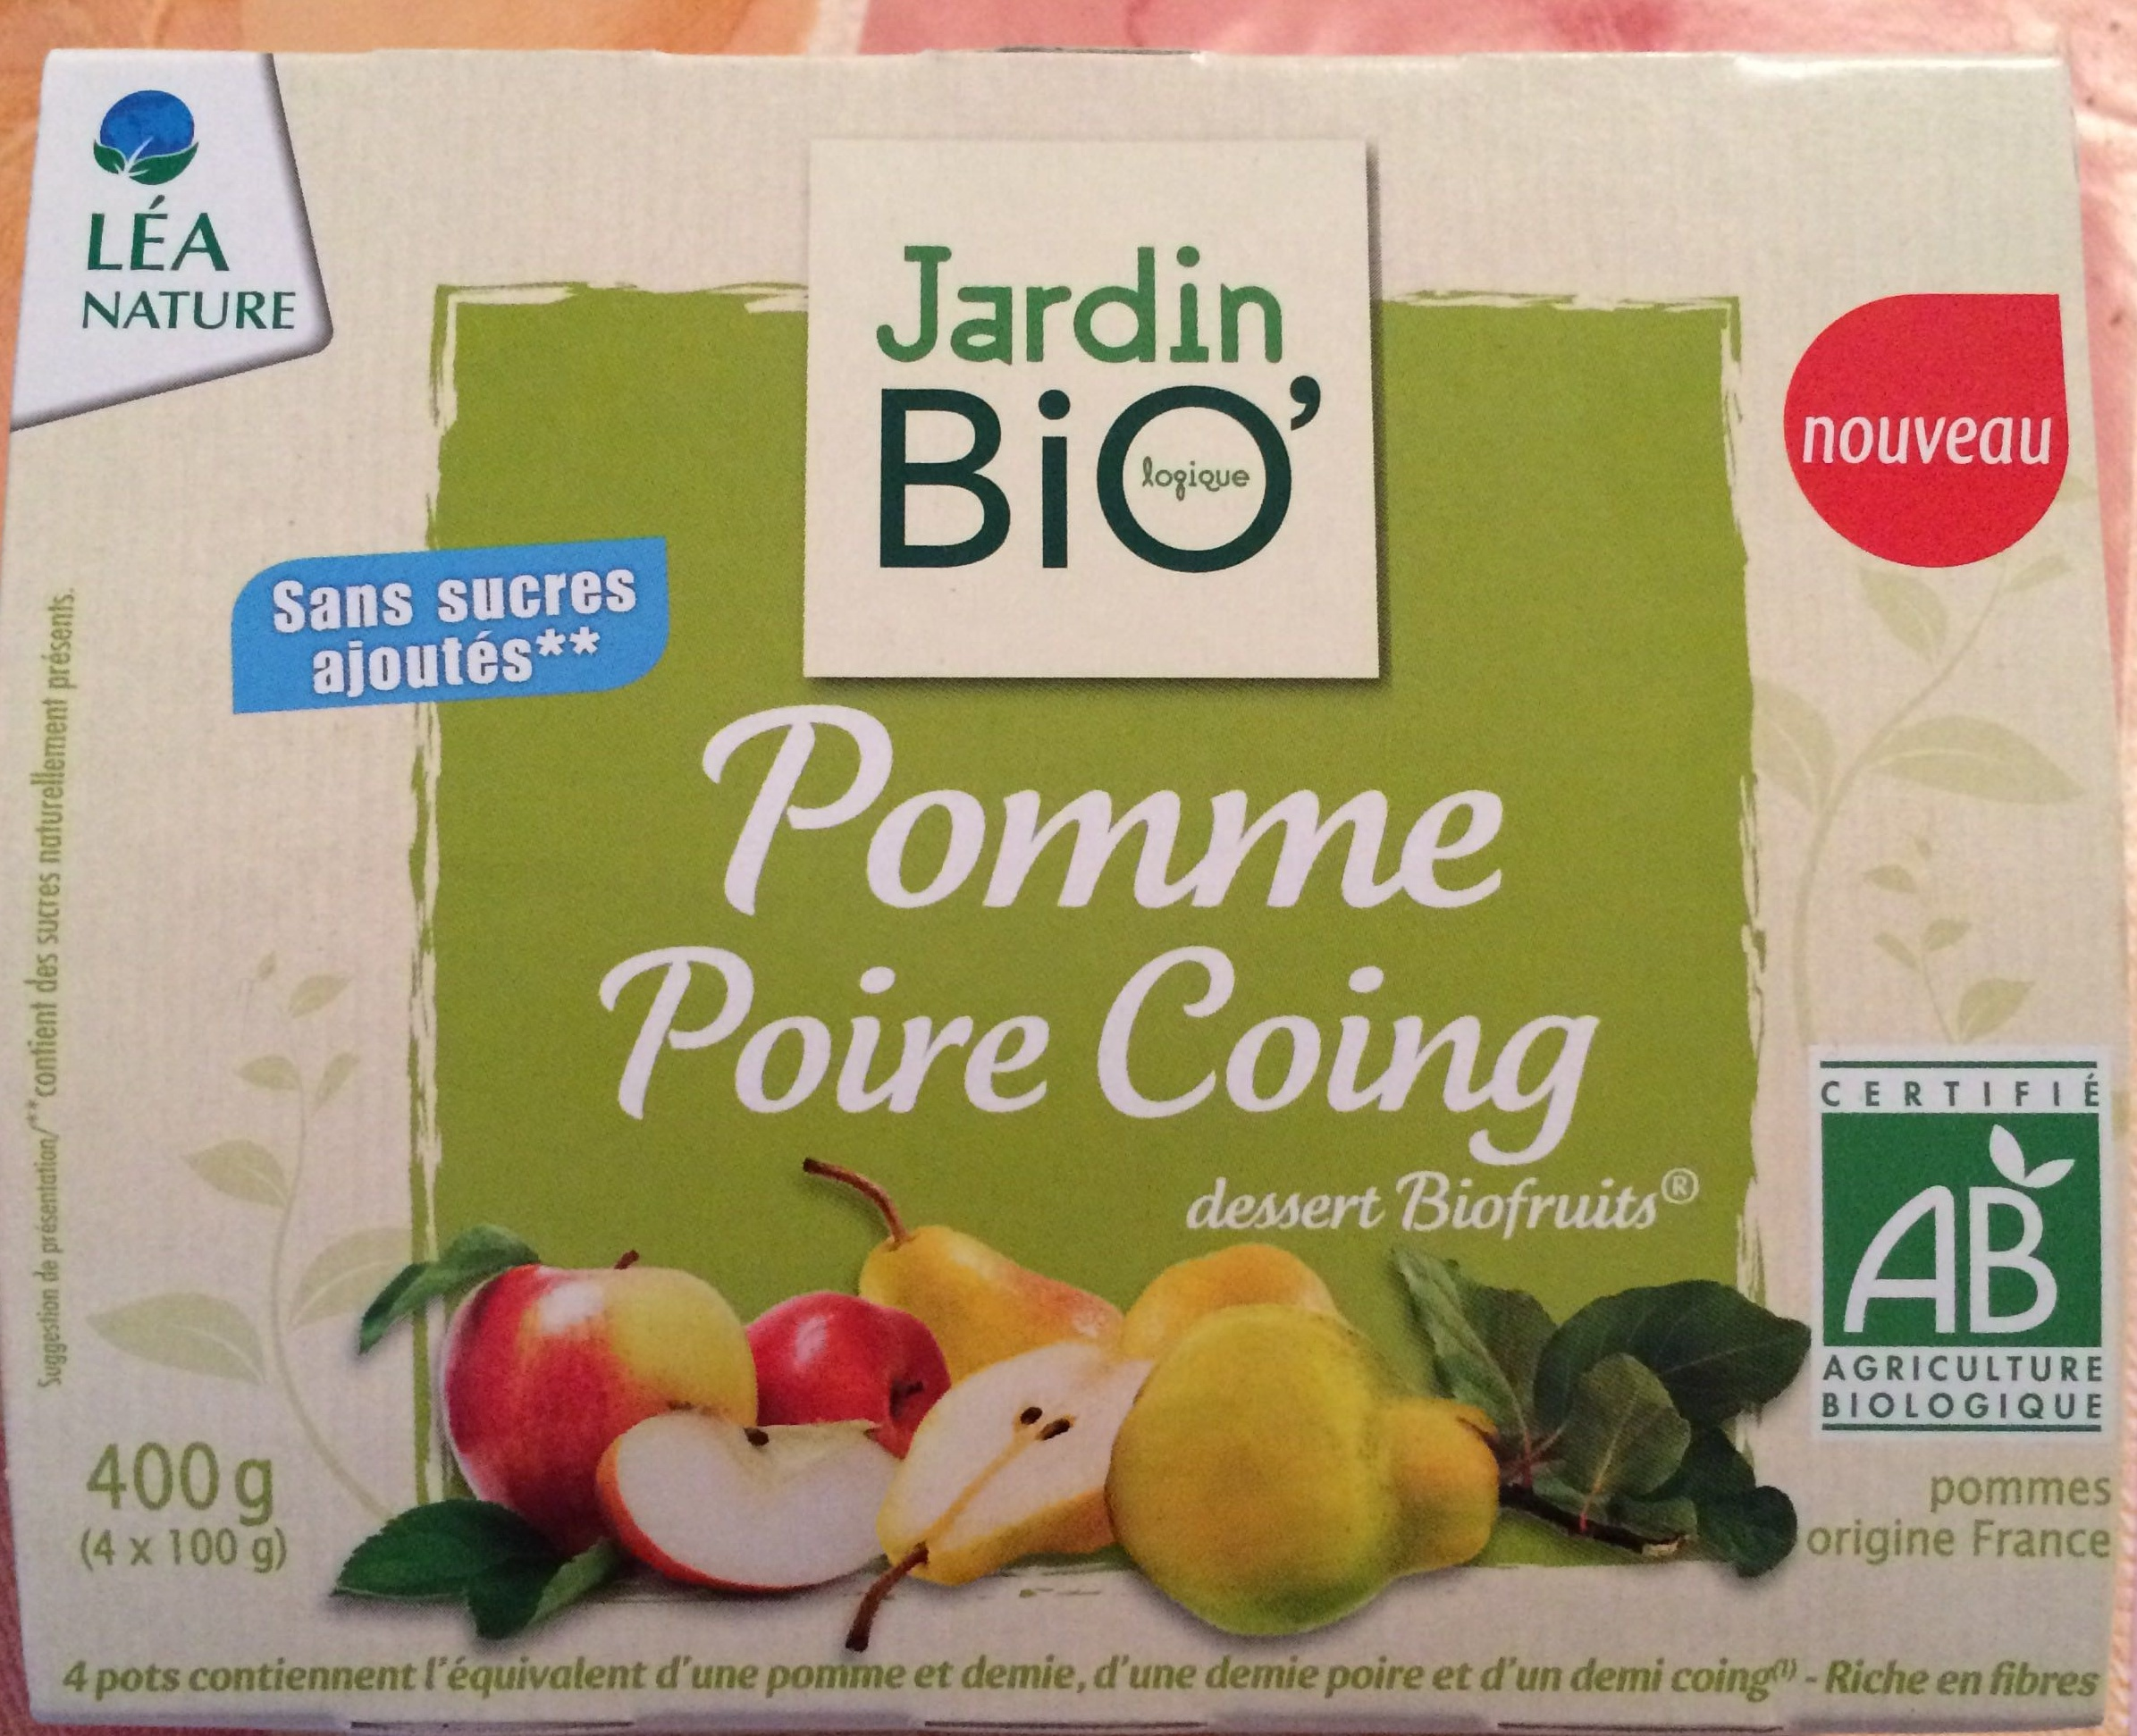 Pomme poire coing - Product - fr